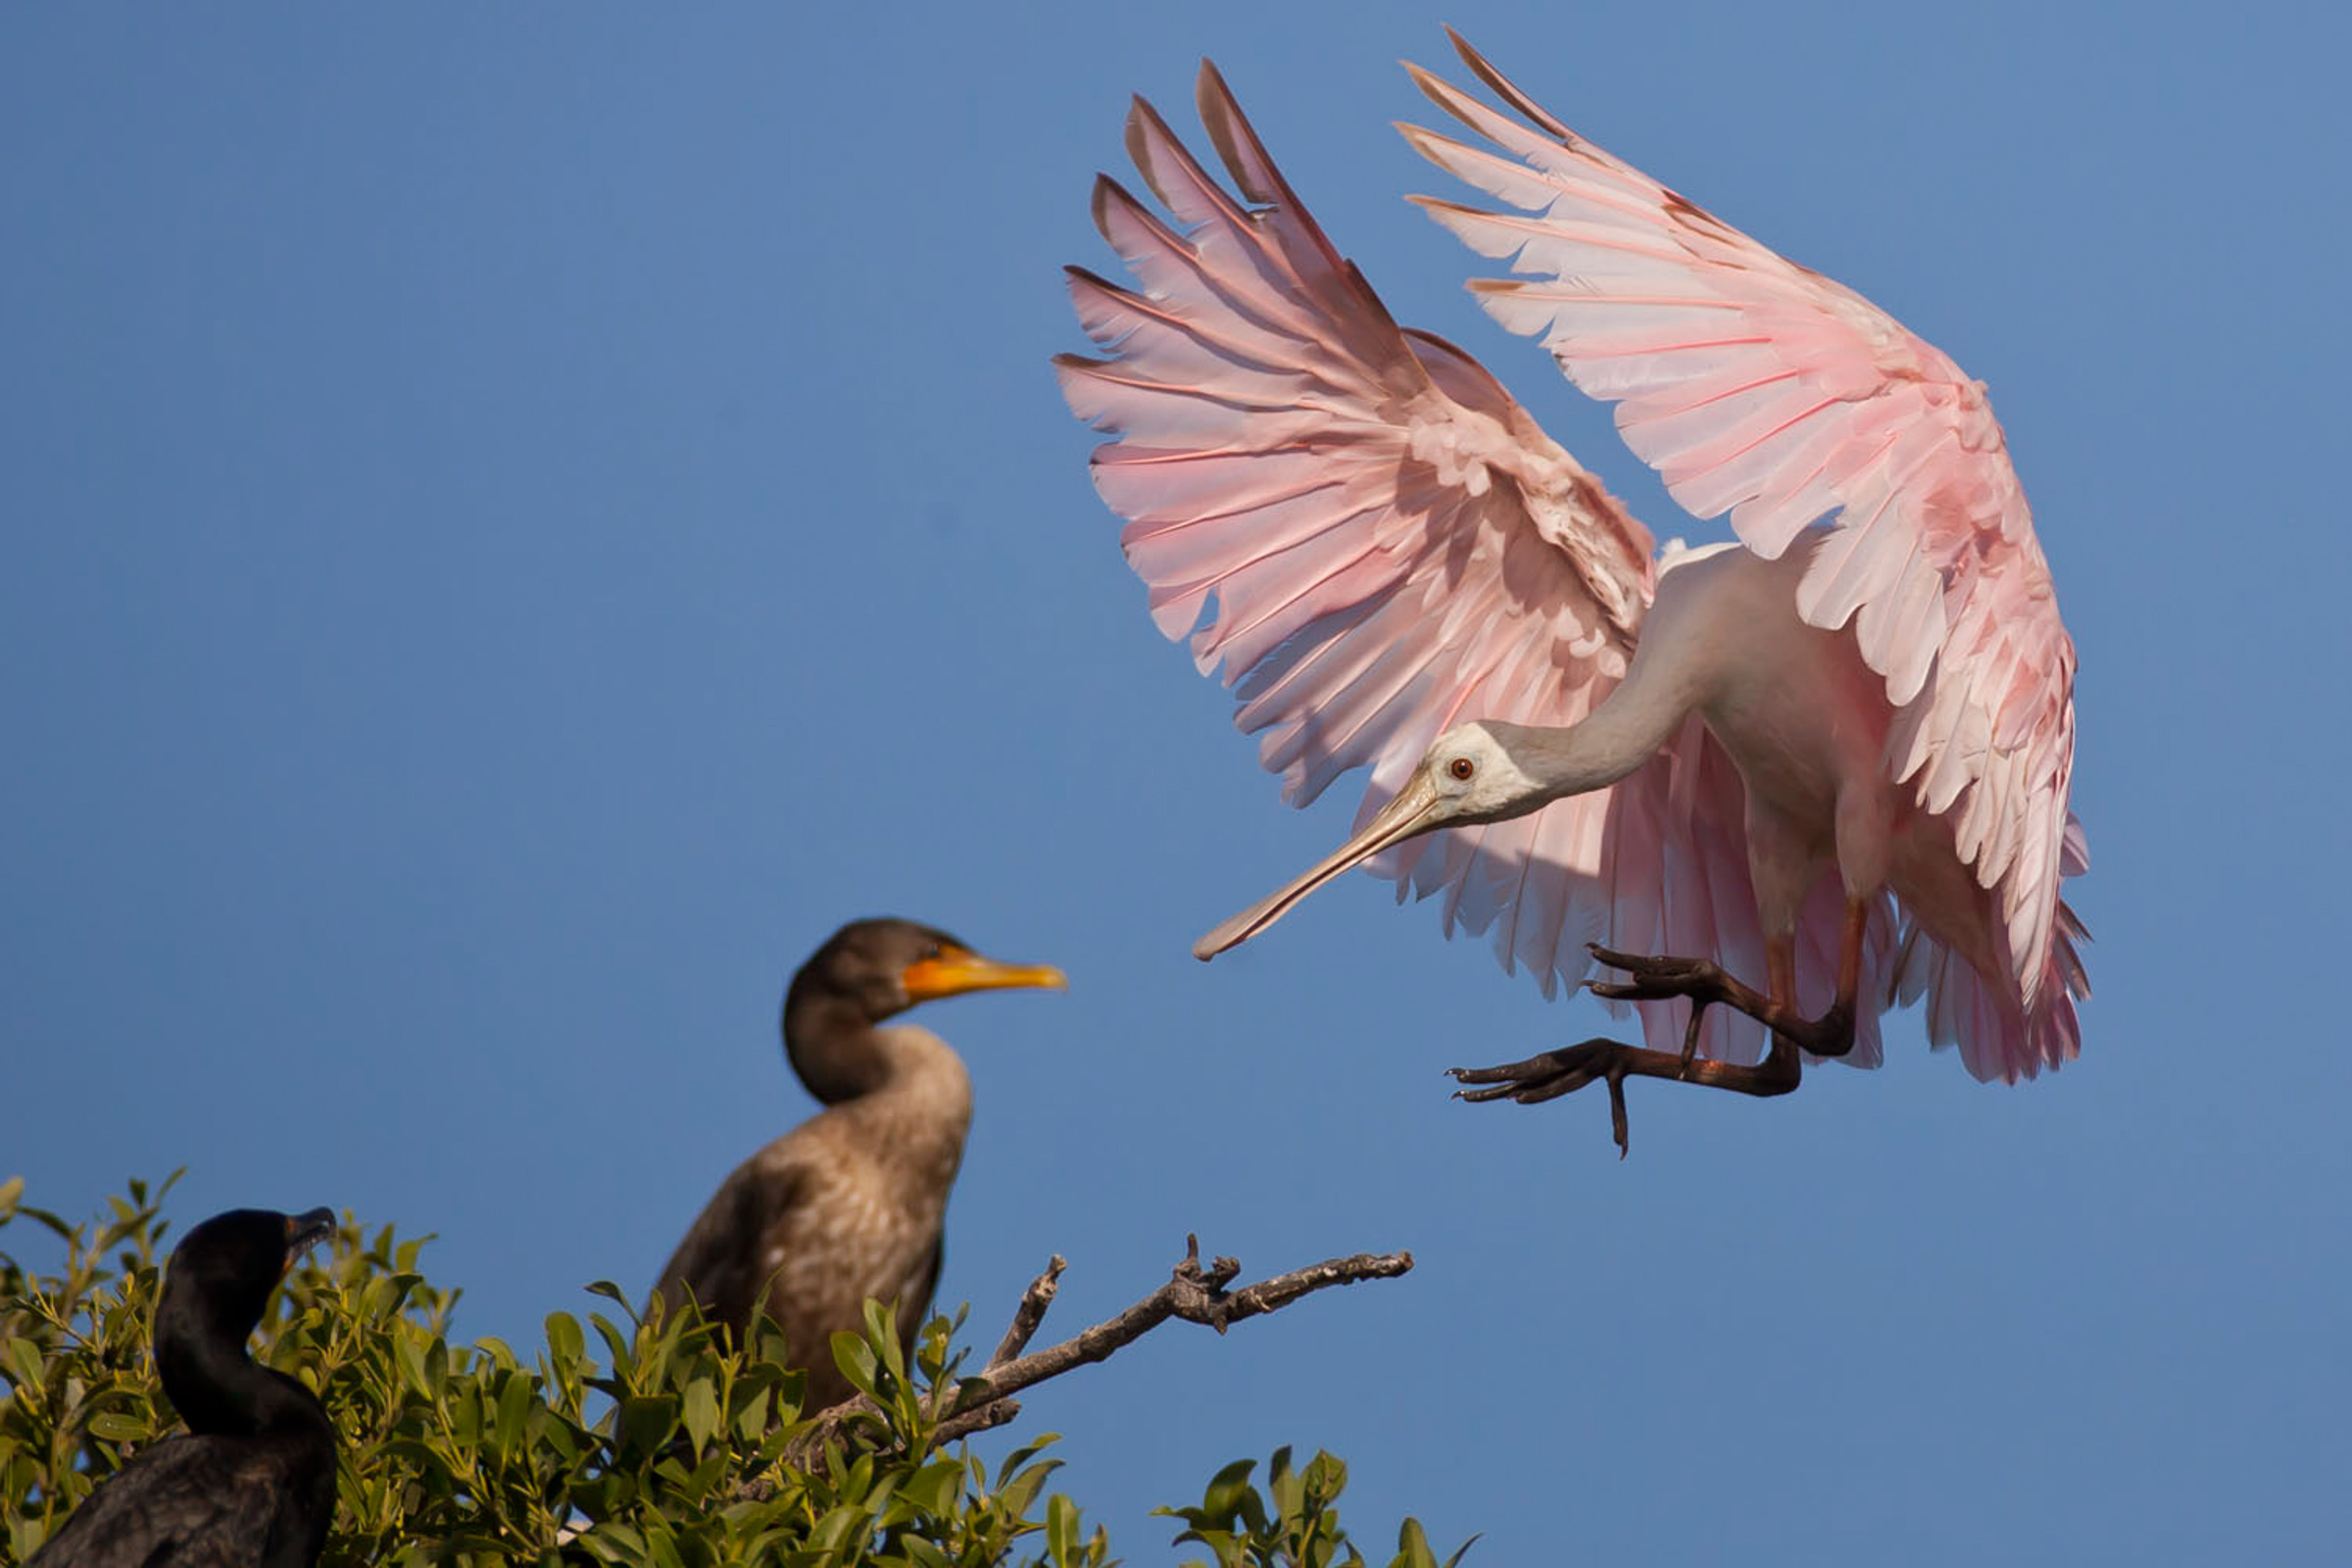 Roseate Spoonbill and Double-crested Cormorant. Photo: Andy Long / Audubon Photography Awards